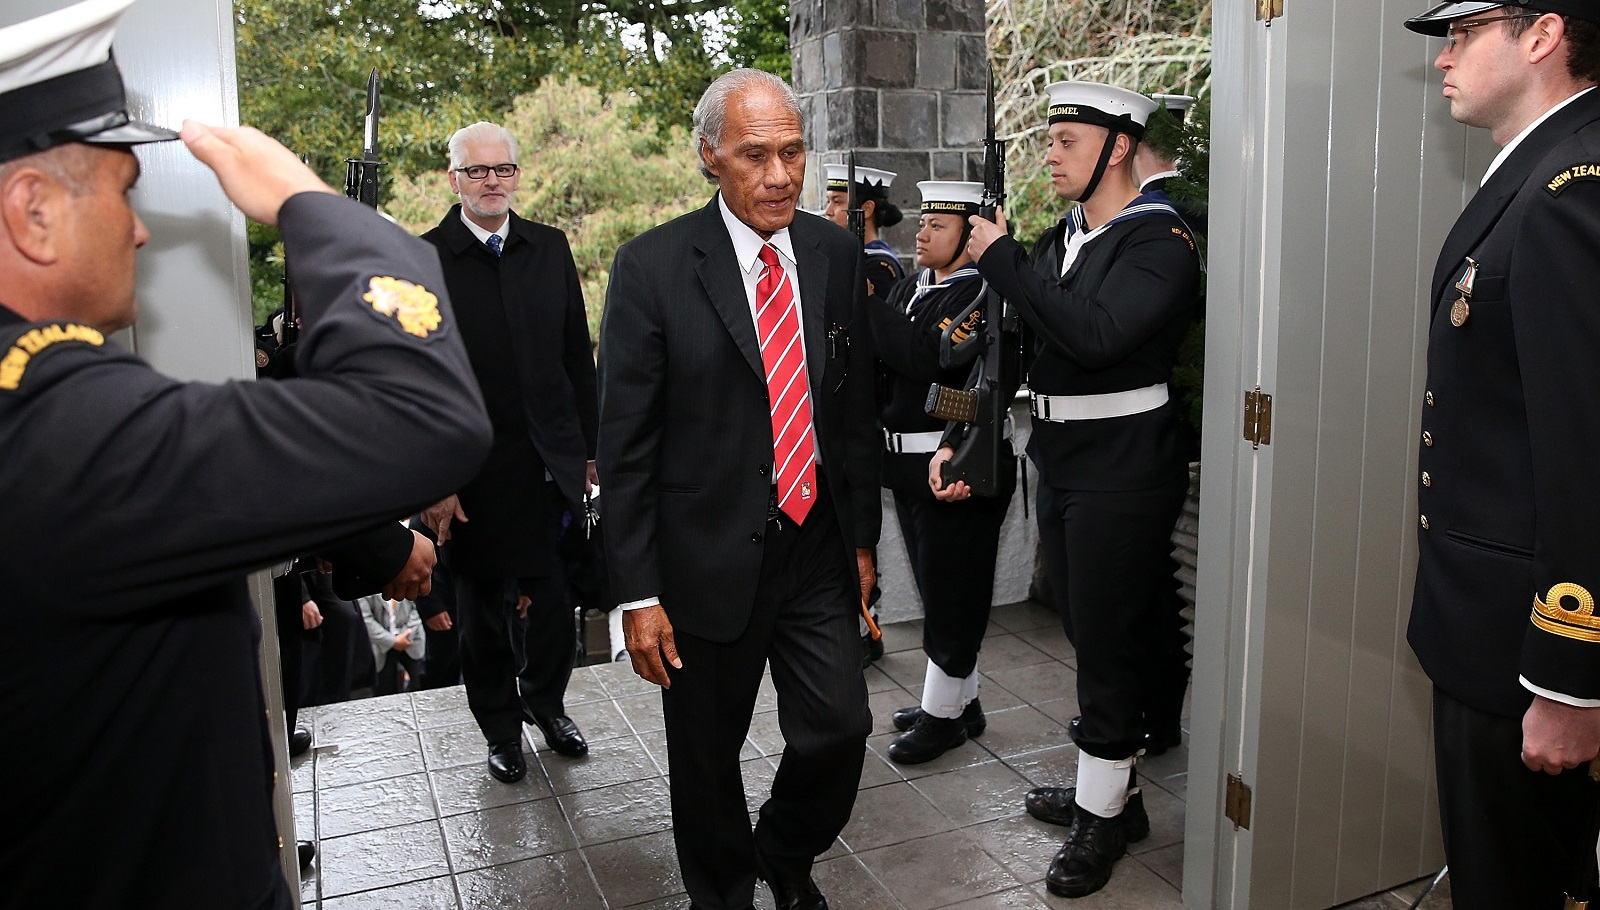 Tonga's King Tupou VI has dissolved the parliament led by PM Samuela 'Akilisi Pohiva (pictured). (Photo: Getty Images)